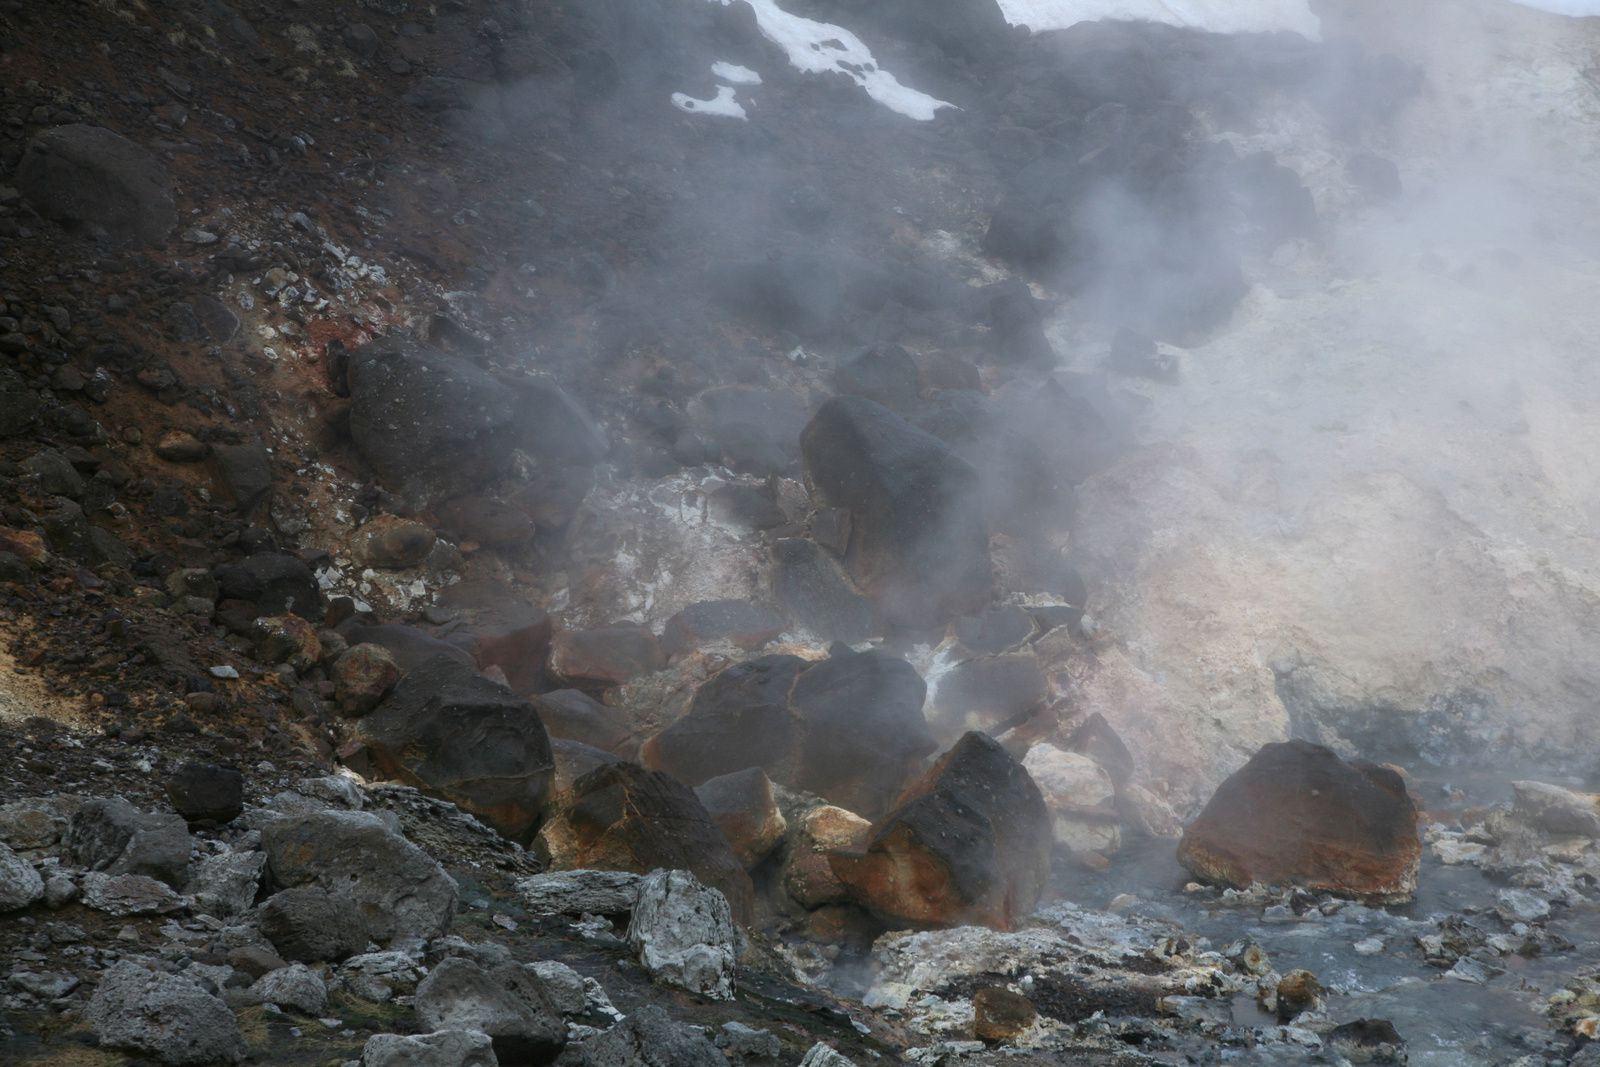 The geothermal field Krísuvík-Seltun - fumaroles and altered rocks - photo © 2015 Bernard Duyck